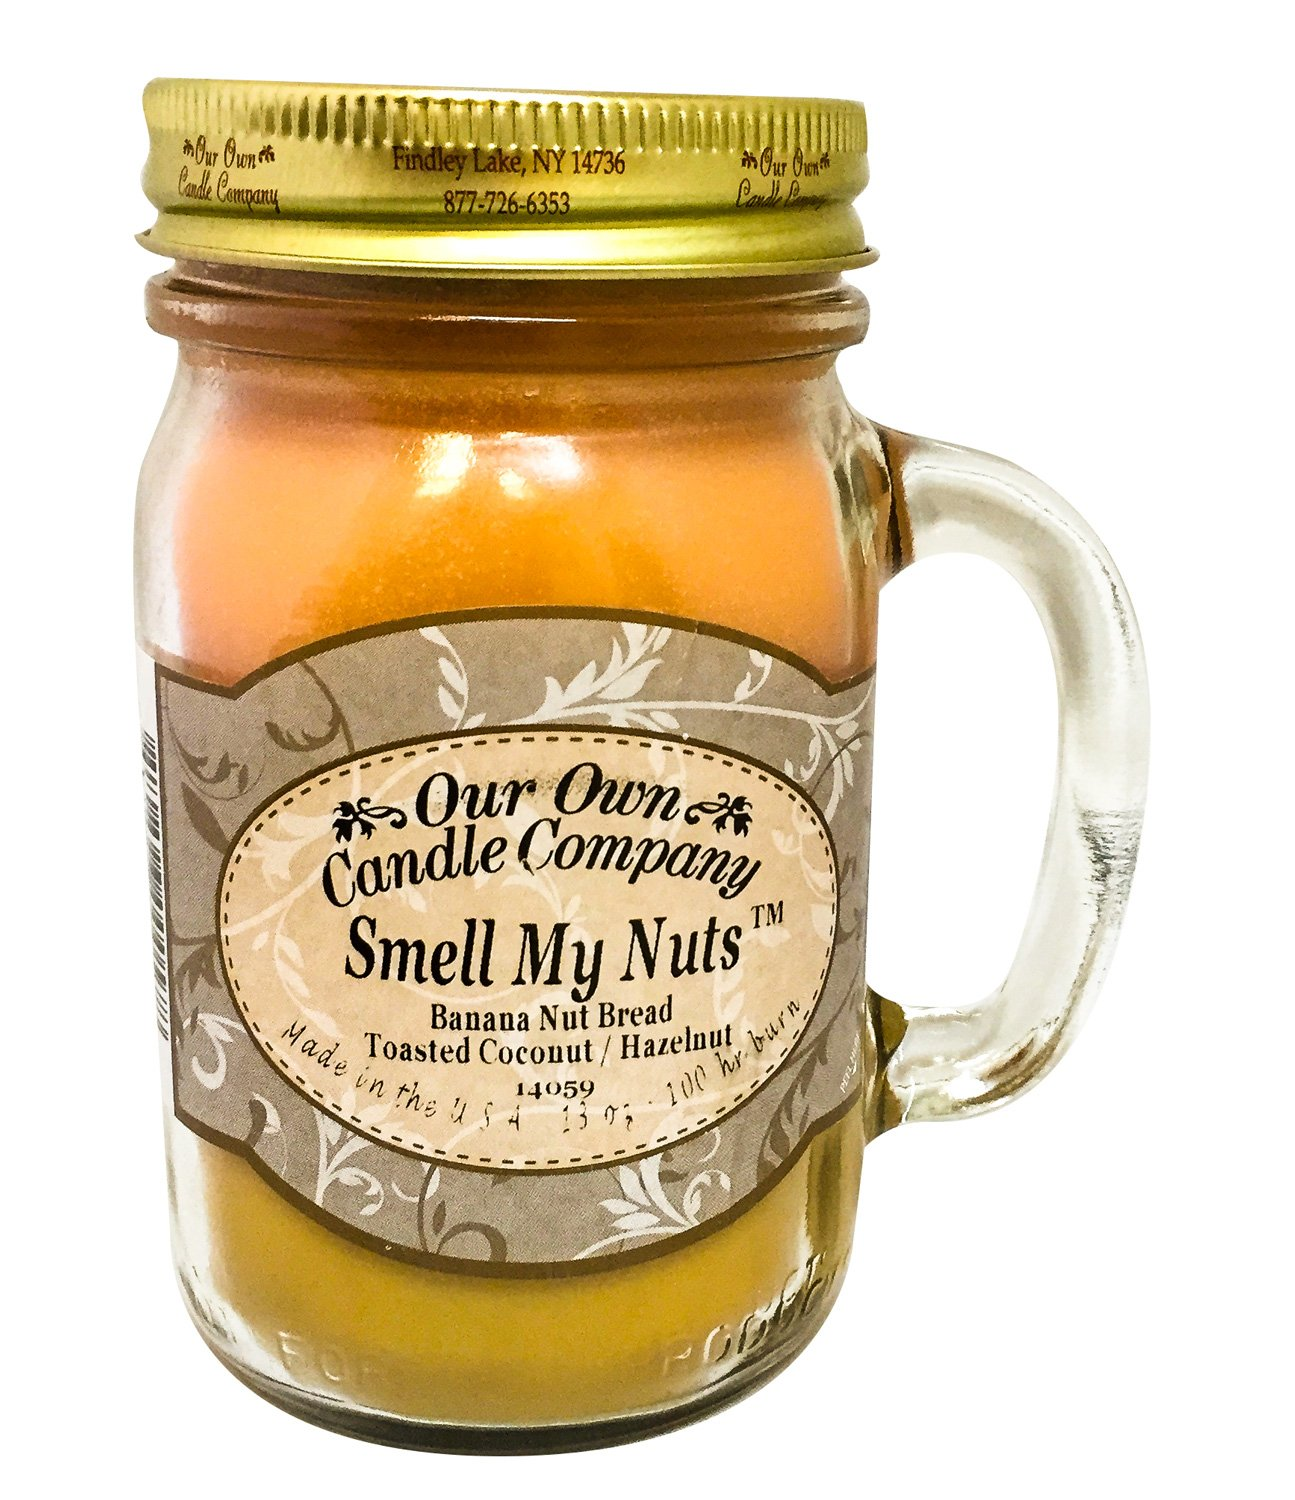 Our Own Candle Company Smell My Nuts Scented 13 oz Mason Jar Candle - Made in the USA by by Our Own Candle Company